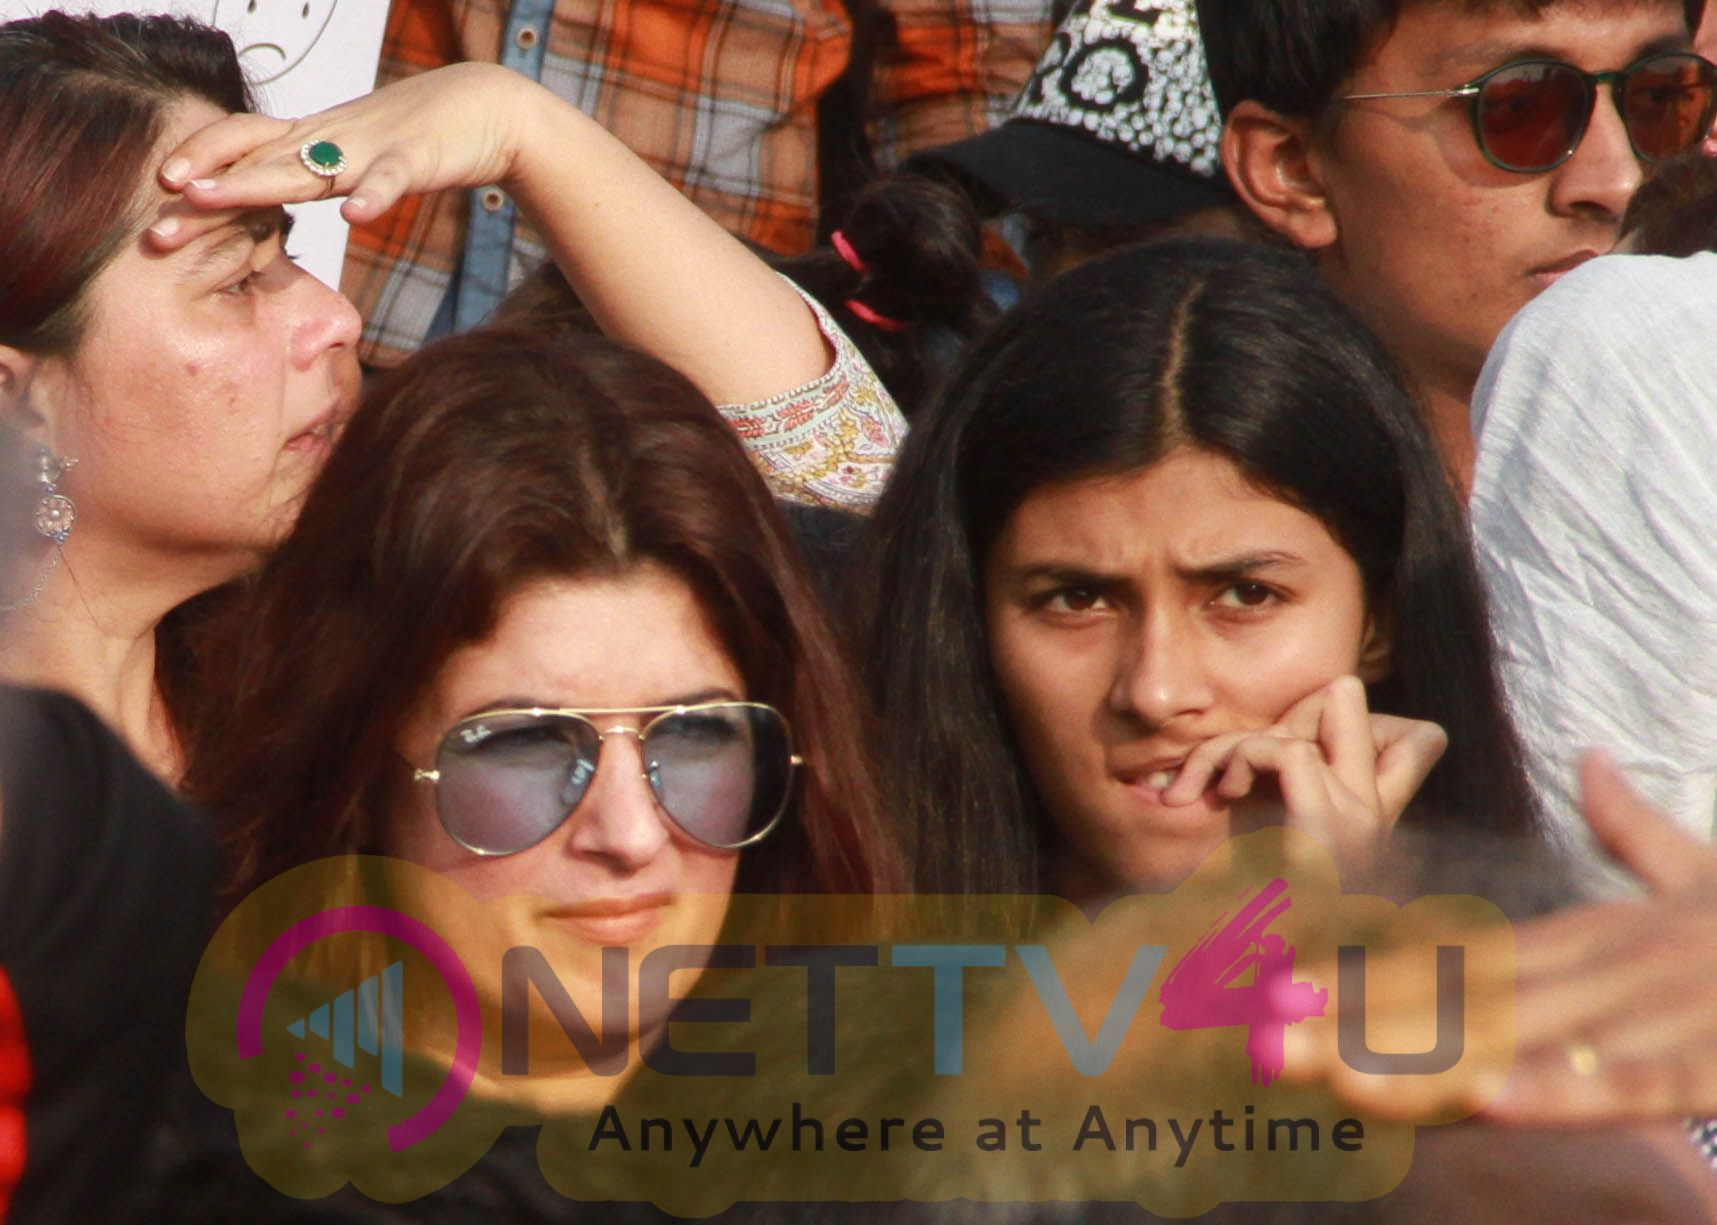 Bollywood  Celebs Attend The Protest March For The Justice In Afisa Rape Case At Bandra In Mumbai Photos